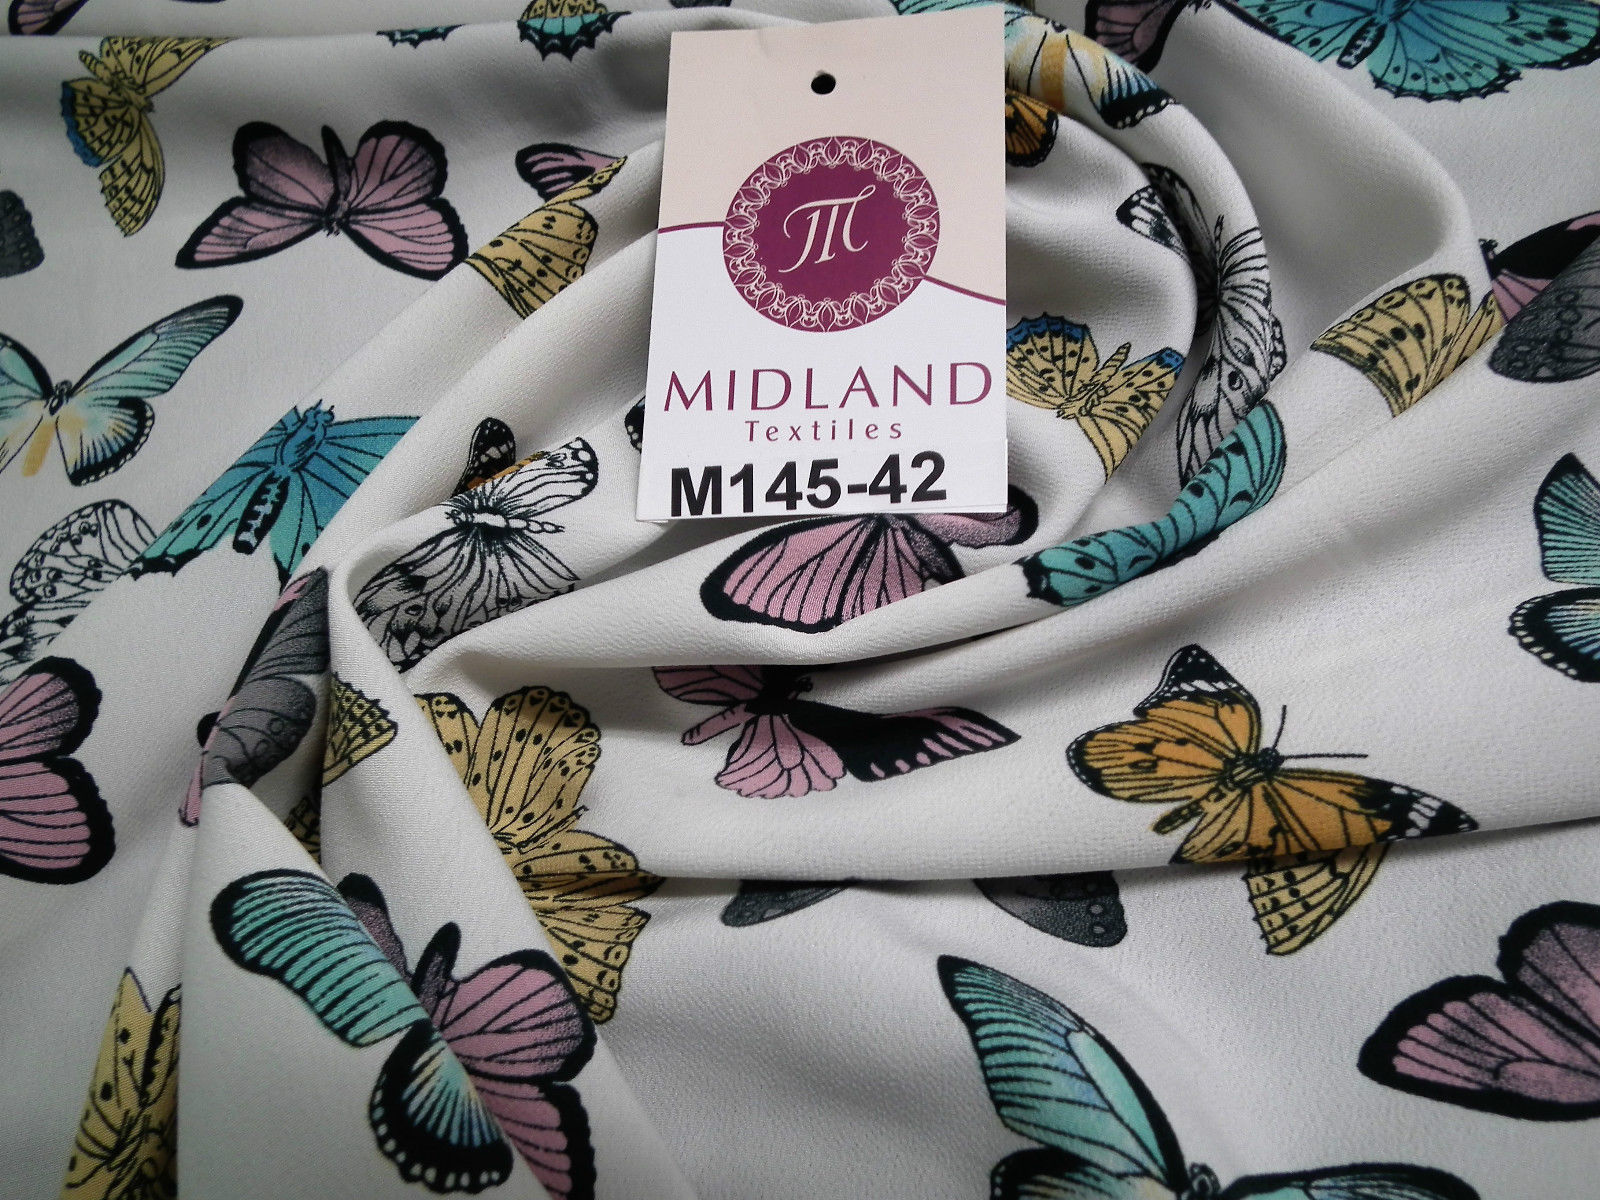 "Pearl White Butterfly Printed peach koshibo dress fabric 58"" wide M145-42 Mtex"